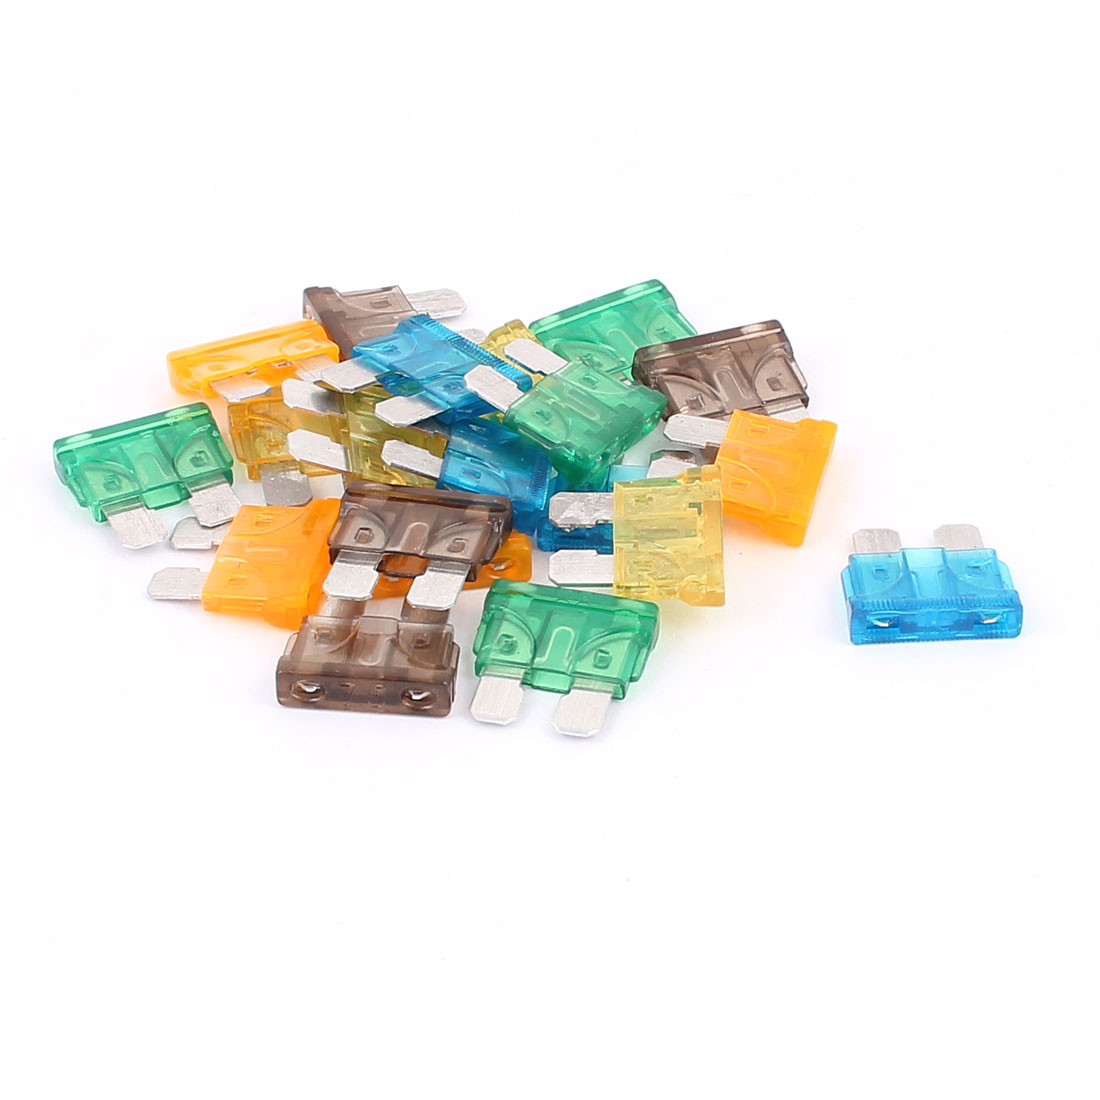 20pcs Assorted Color Plastic Housing ATC ATO Mini Blade Fuses for Auto Car Caravan Vehicle